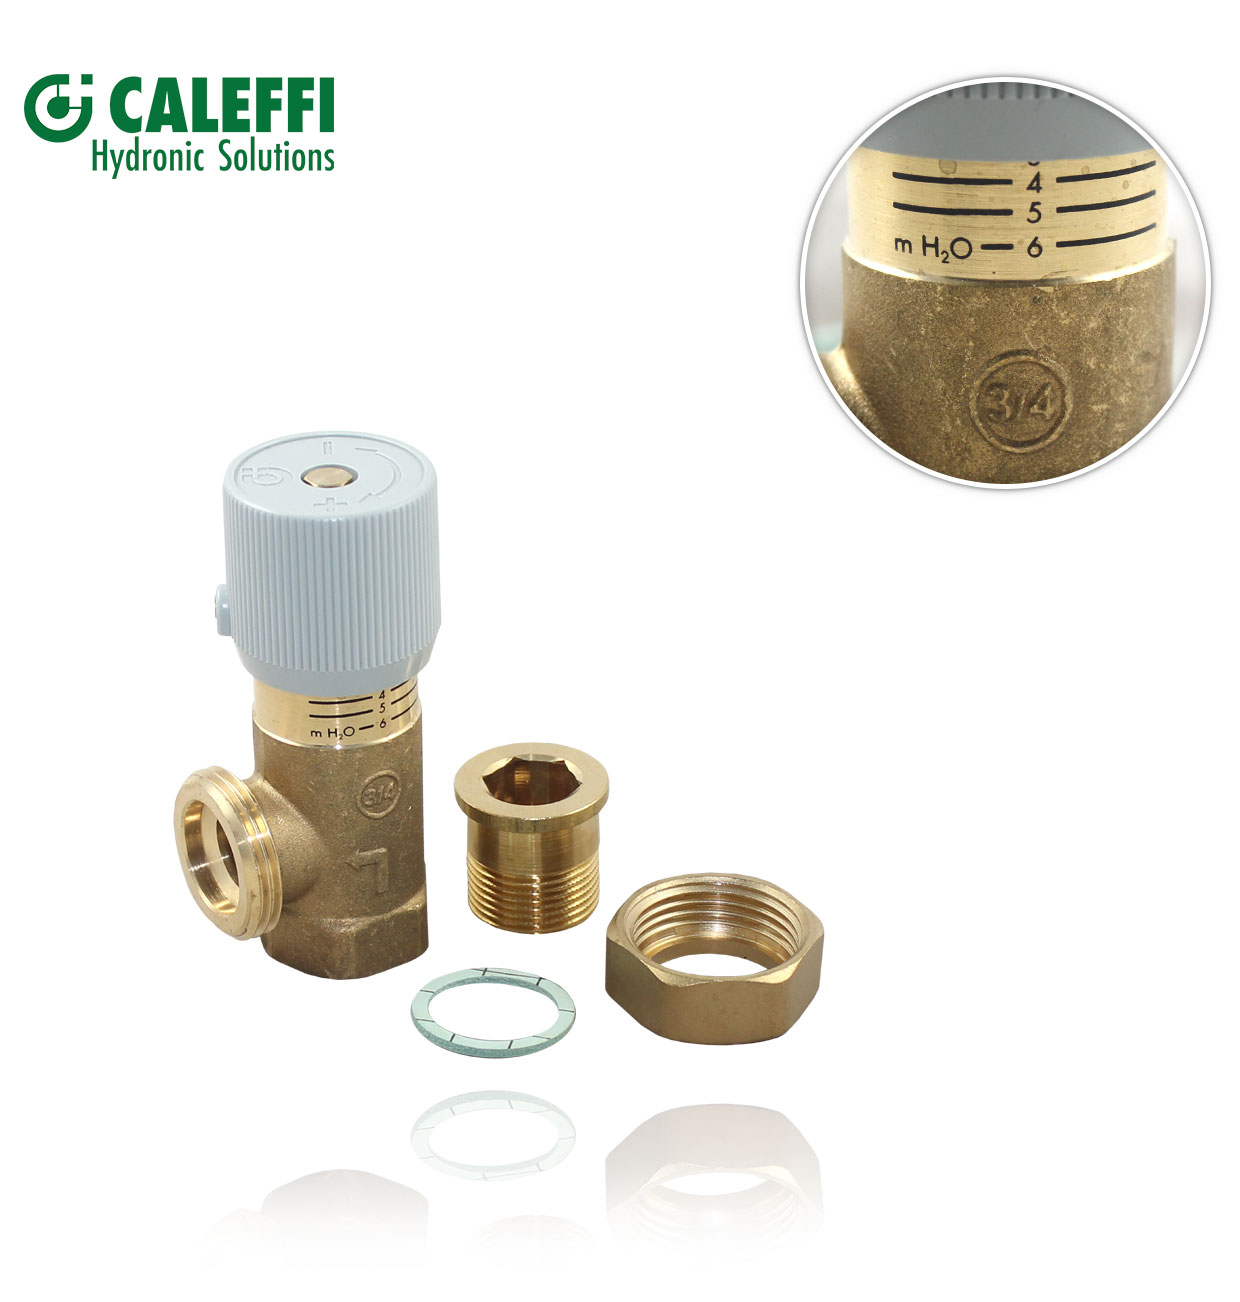 "VALVULA ""BY-PASS"" DIFERENCIAL R3/4"" 1/6M.H2 CALEFFI"